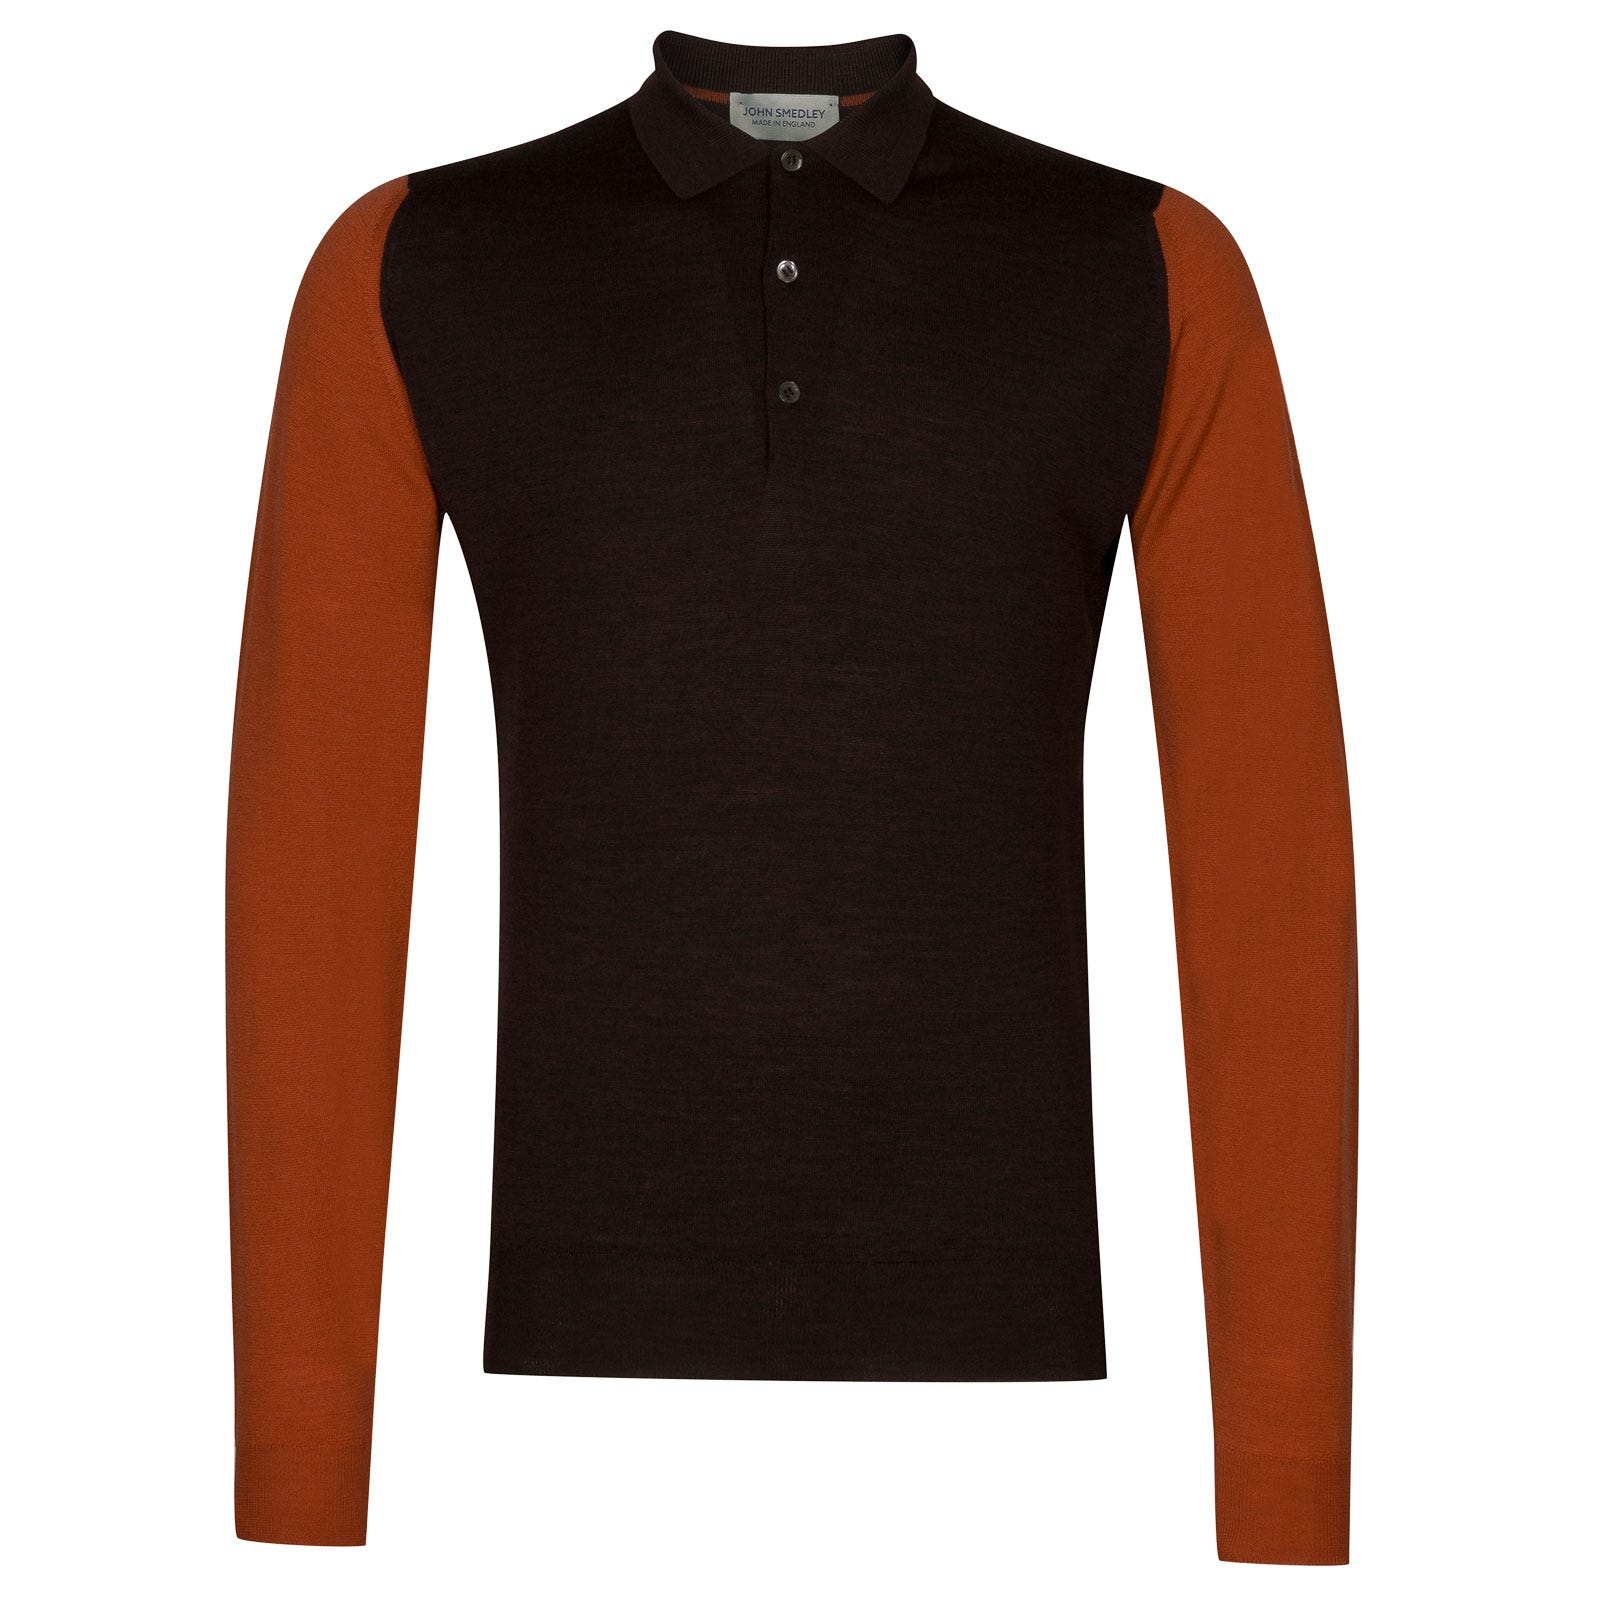 John Smedley Brightgate Merino Wool Shirt in Chestnut/Flare Orange-XL